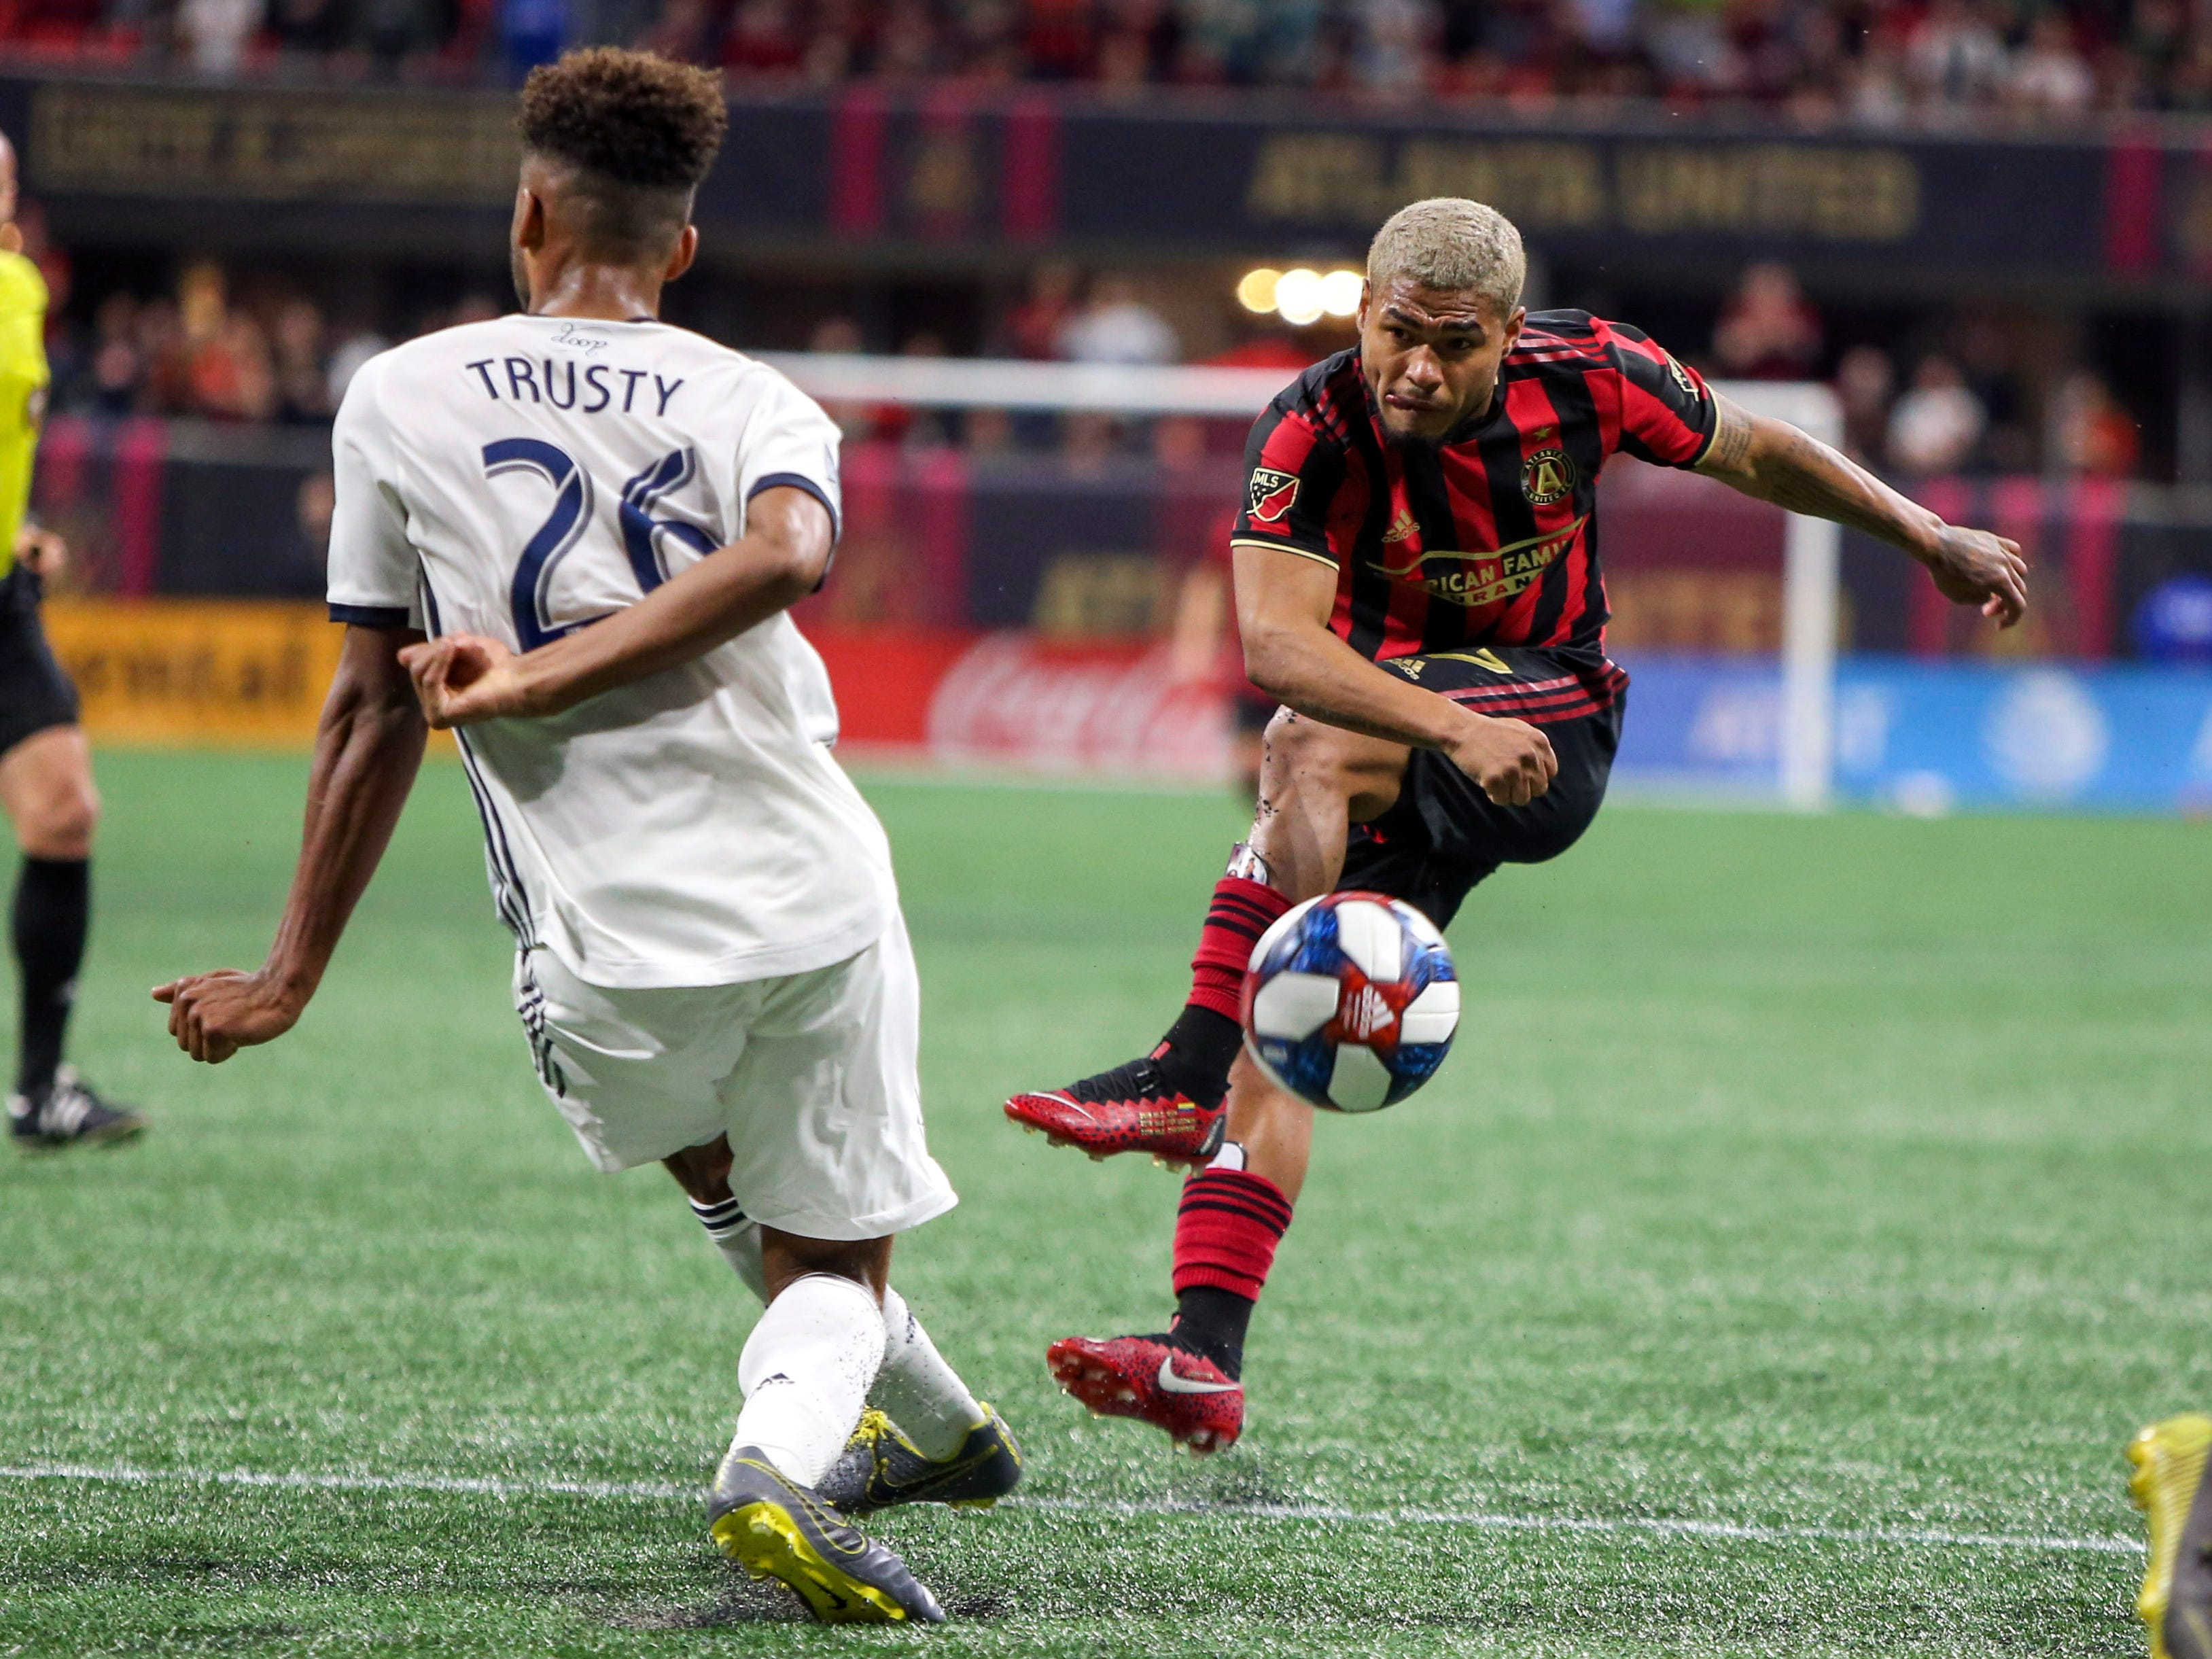 March 17: Atlanta United forward Josef Martinez takes a shot against the Philadelphia Union in the second half at Mercedes-Benz Stadium. The game ended in a 1-1 tie.